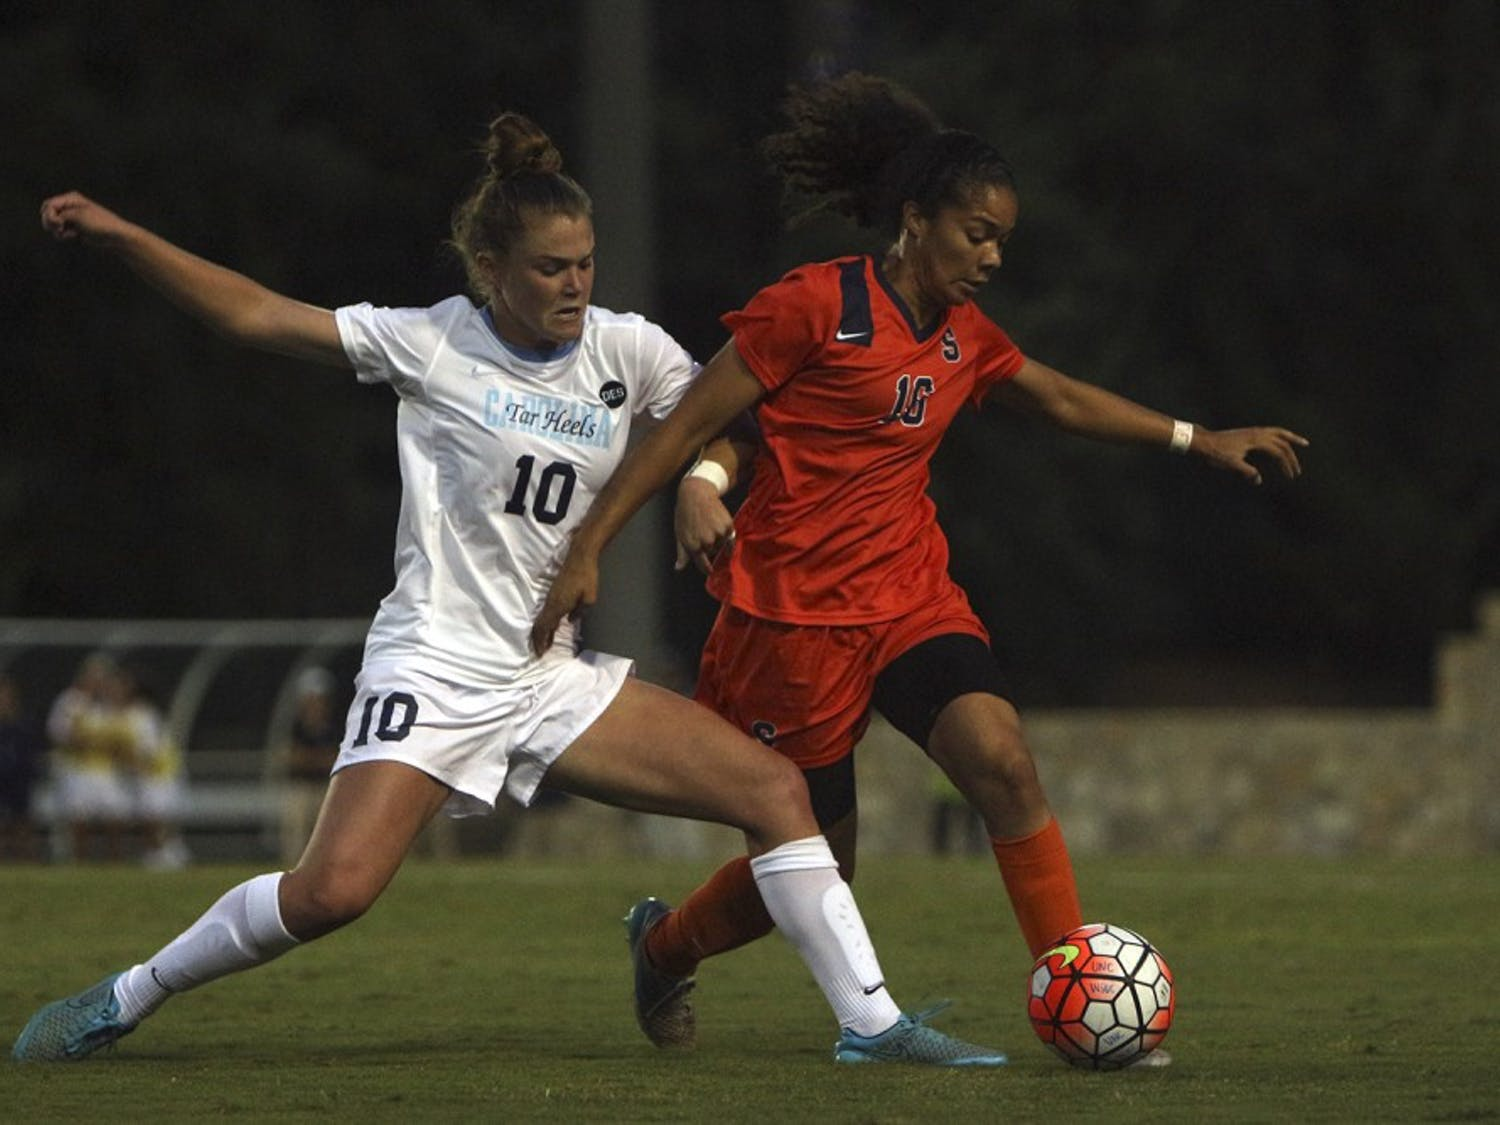 The UNC women's soccer team took on Syracuse Thursday evening at Fetzer Field.